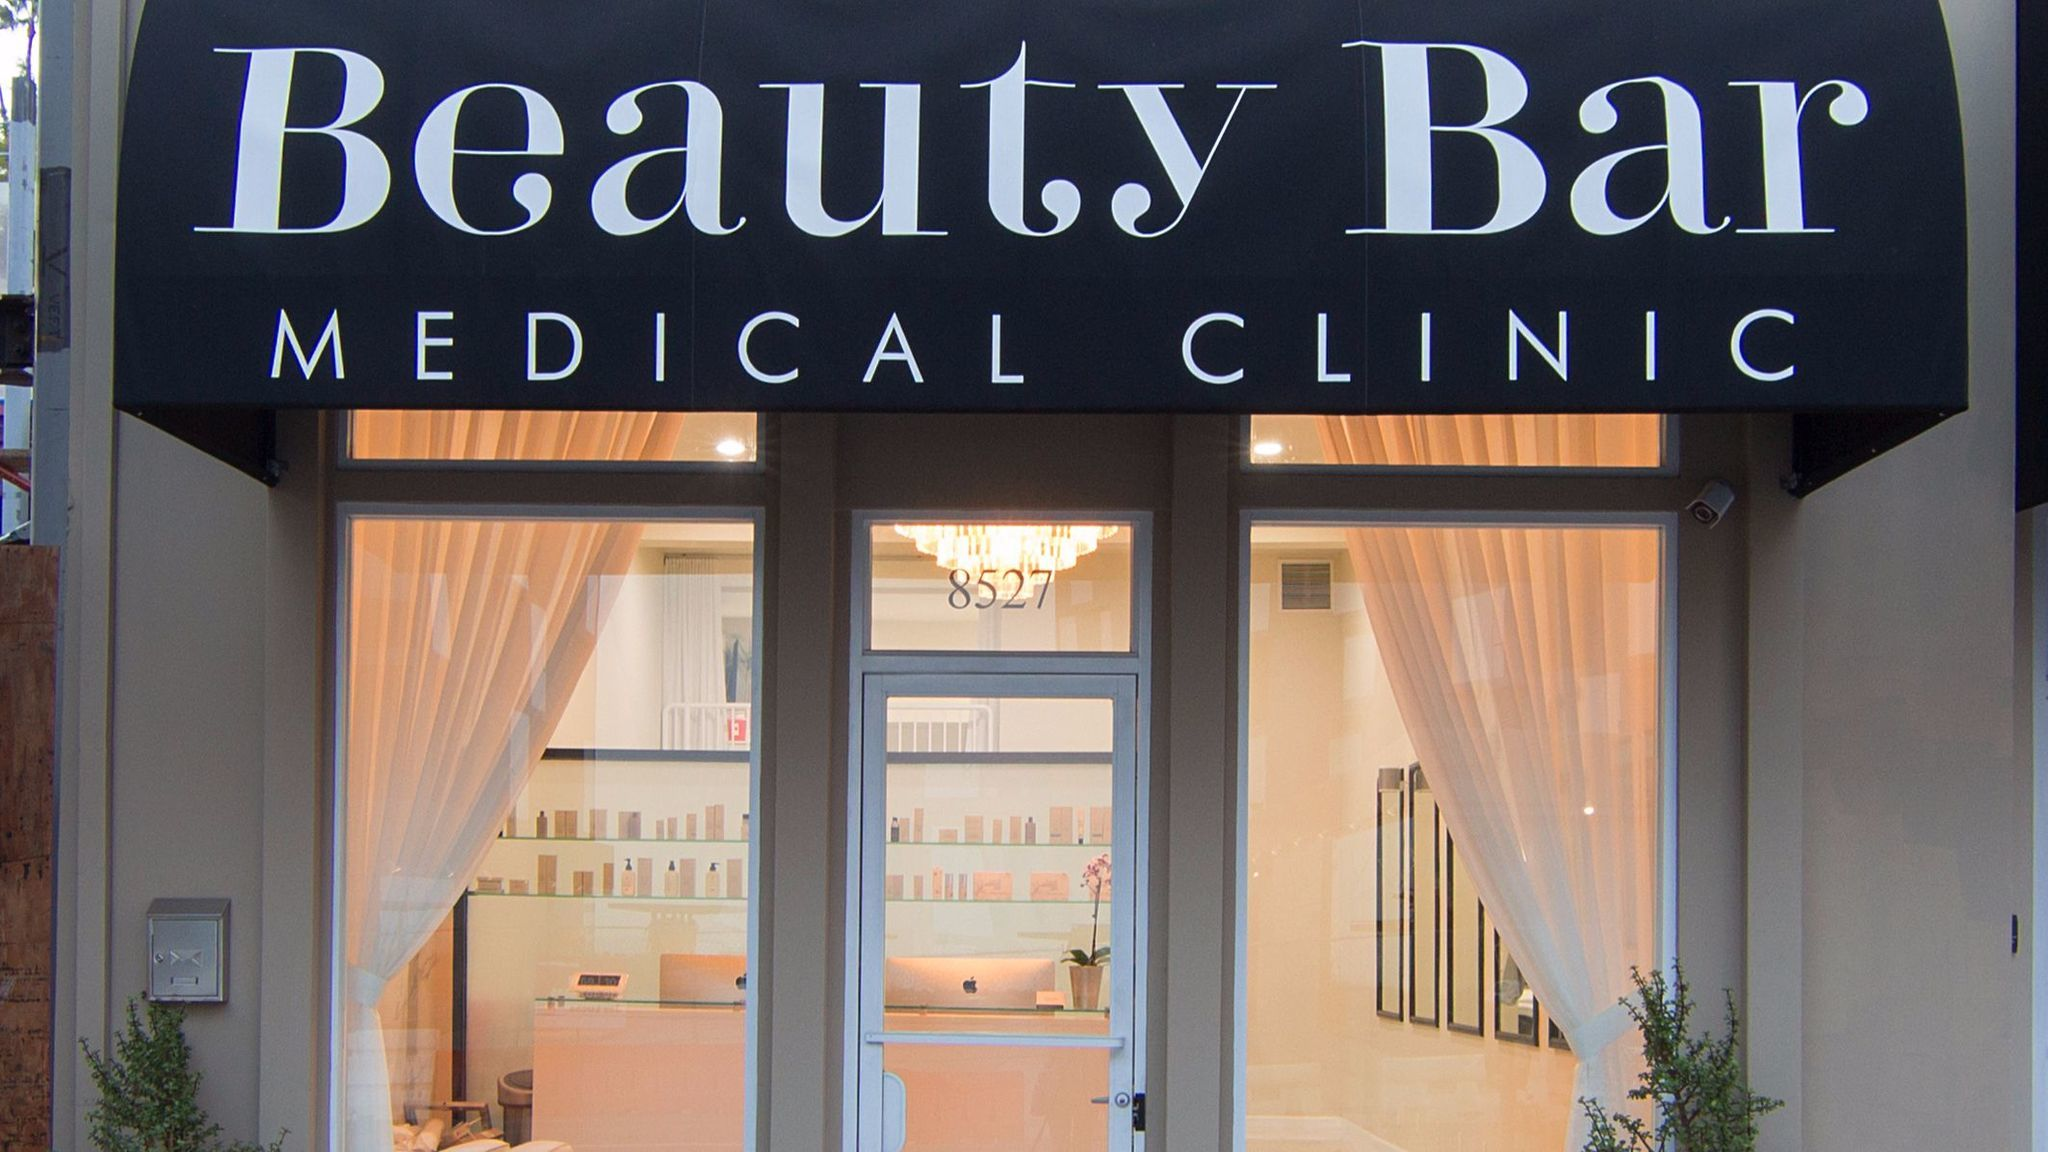 The Beauty Bar Medical Clinic in West Hollywood offers a HydraFacial which promises almost immediate